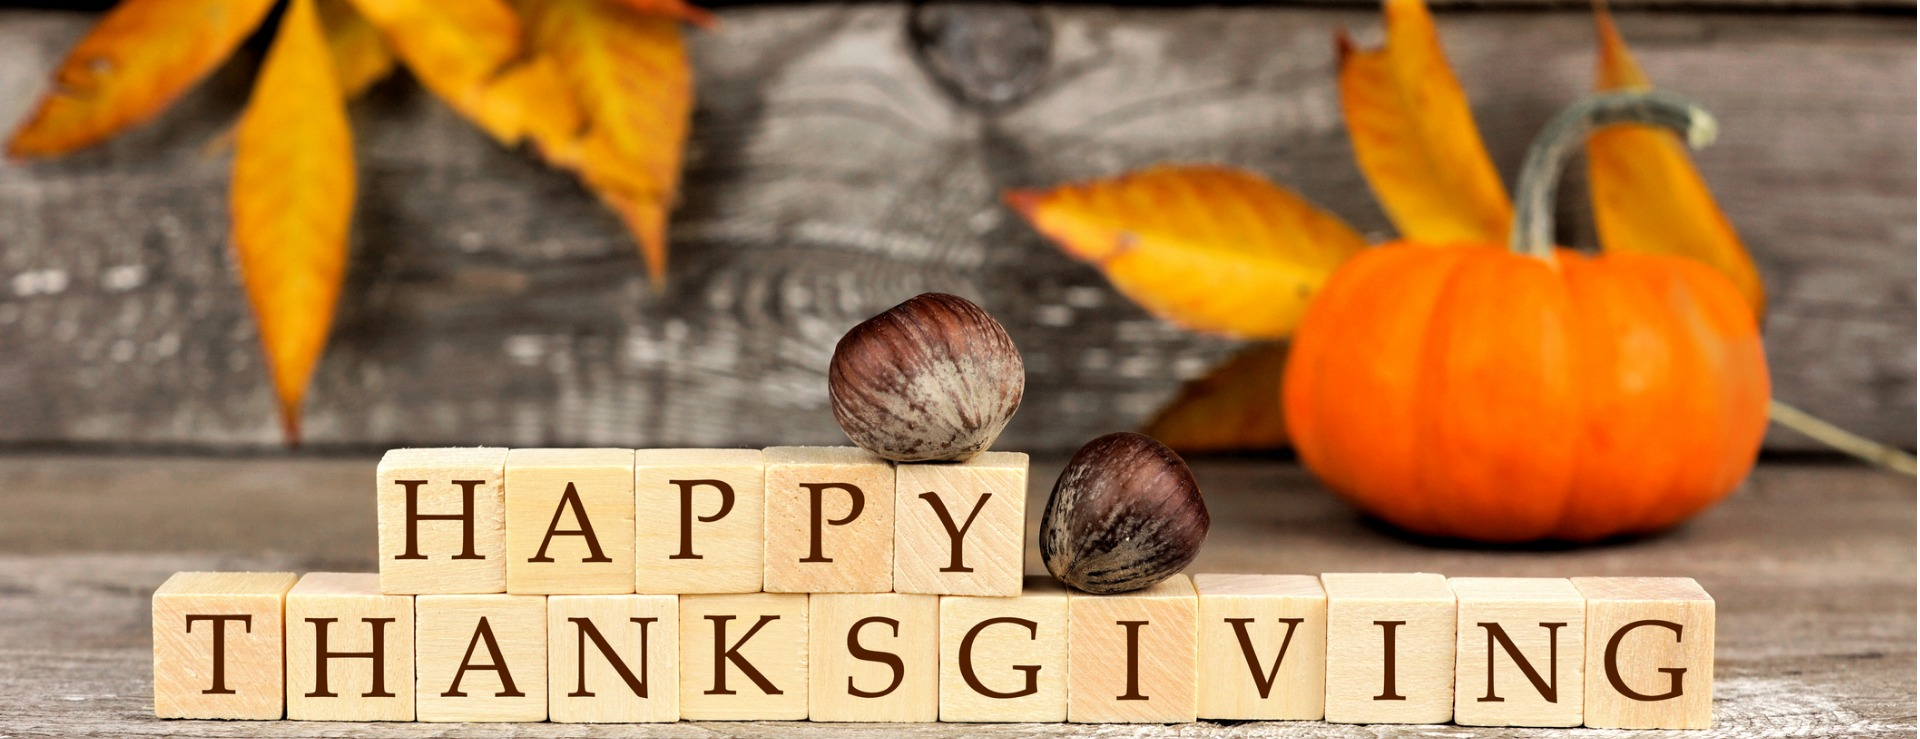 happy-thanksgiving-wooden-blocks-against-rustic-wood-with-autumn-picture-id491131958-1